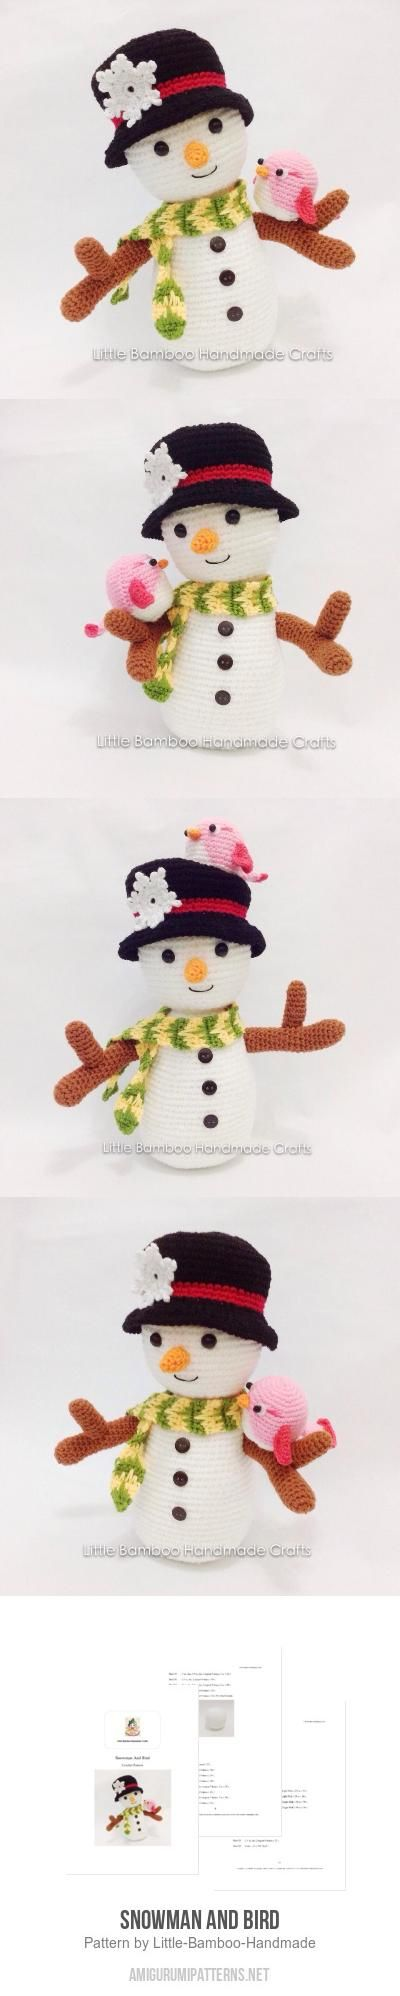 Snowman And Bird amigurumi pattern by Little Bamboo Handmade ...